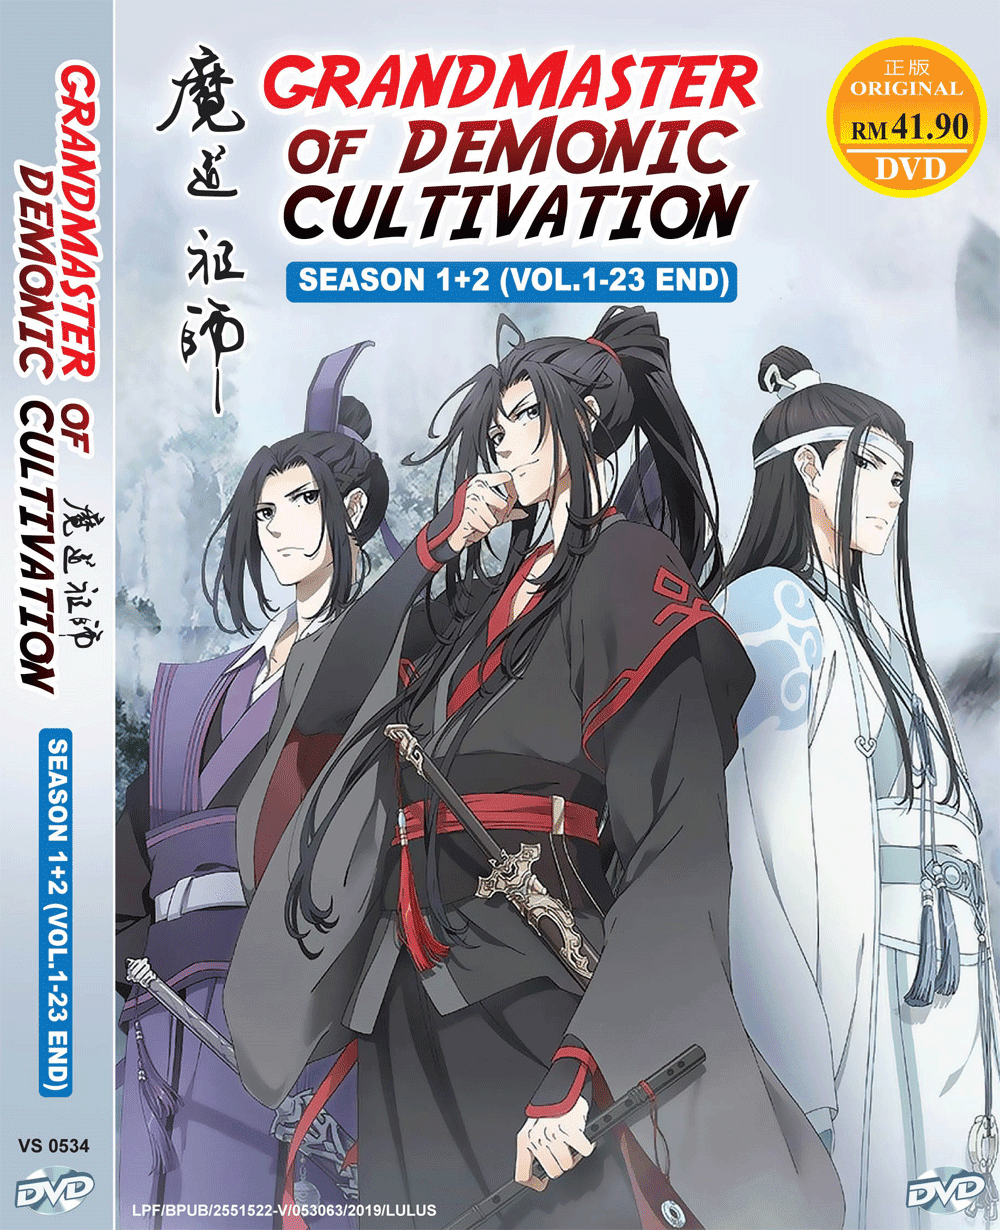 Grand Master of Demonic Cultivation season 1+2 Vol. 1-23 End